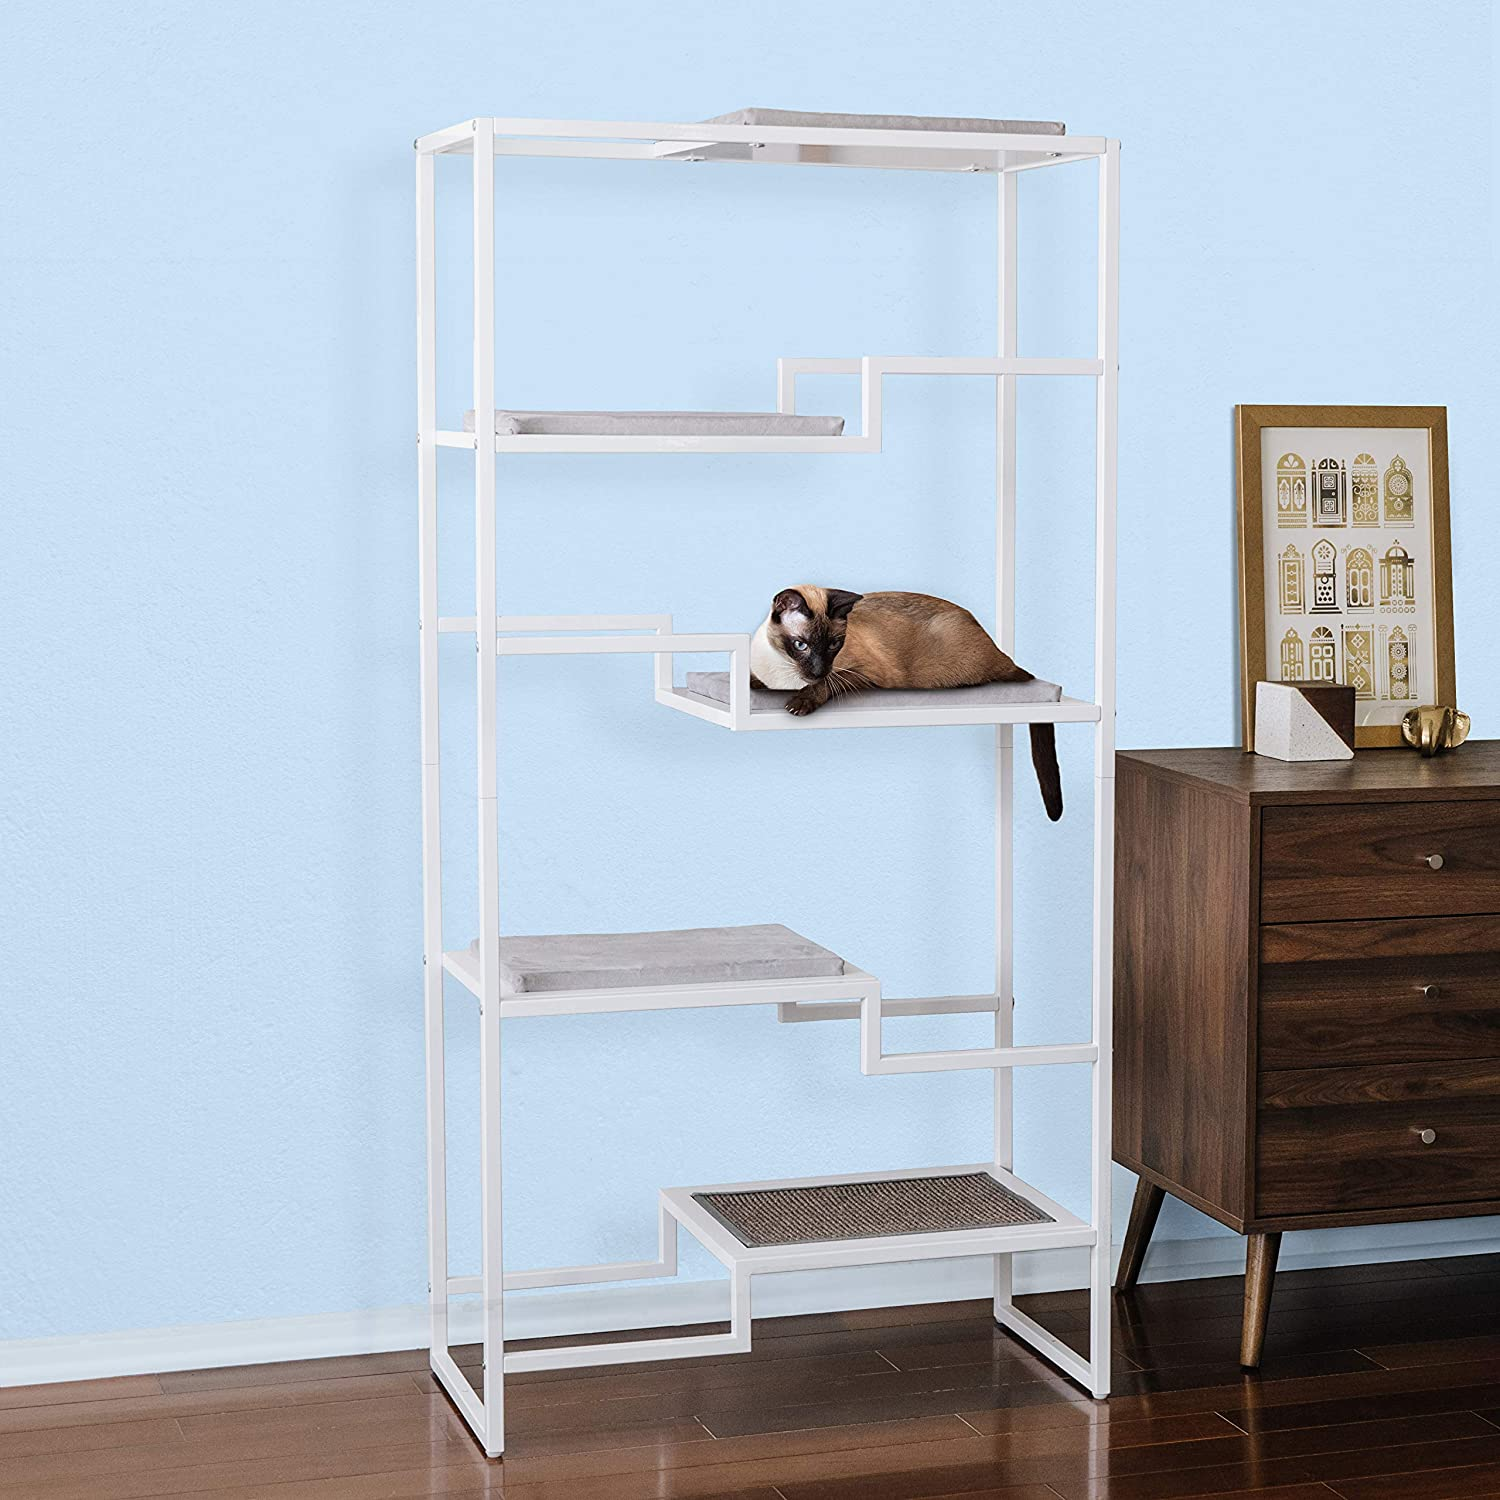 Modern Furniture for Multiple Cats Stepped Platforms for Cats and Kittens THE REFINED FELINE Metropolitan Cat Condo